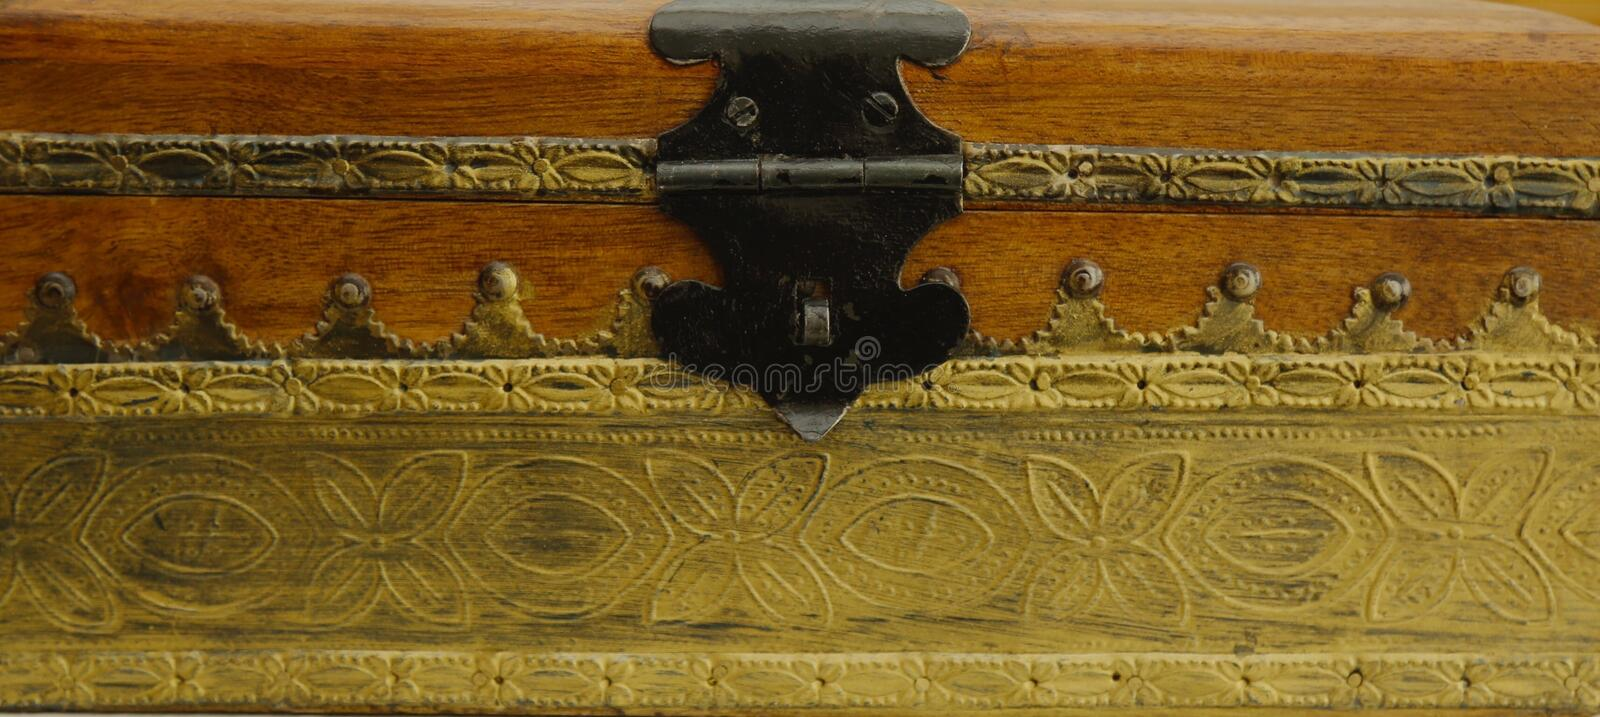 Treasure chest. Wooden treasure chest with gold trim decoration stock photo